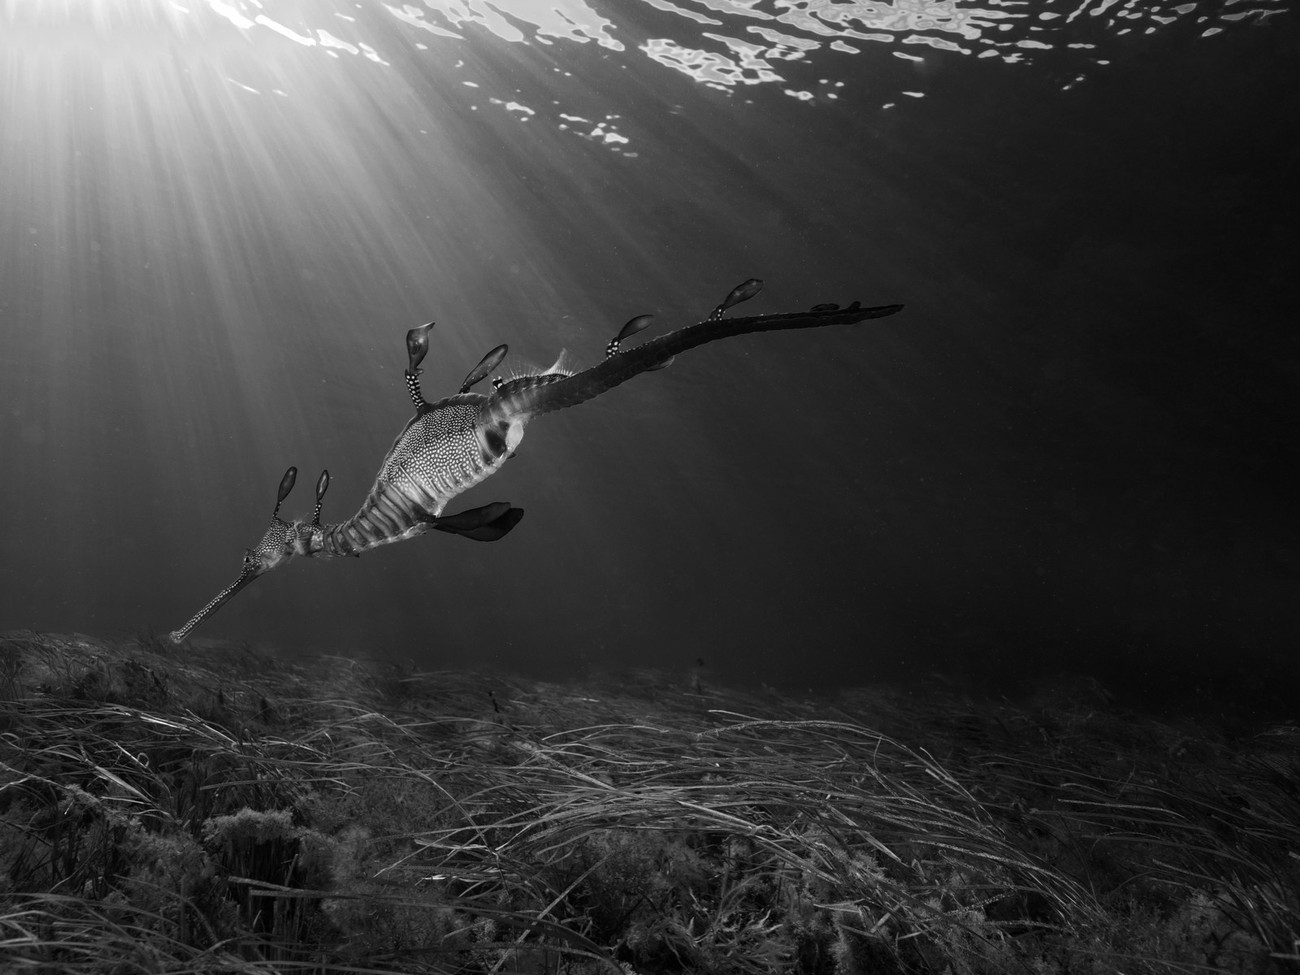 Weedy Sea Dragon in Black and White because it a high contrast image to being with, the light rays and the sea grass in black and white make it a very dramatic image